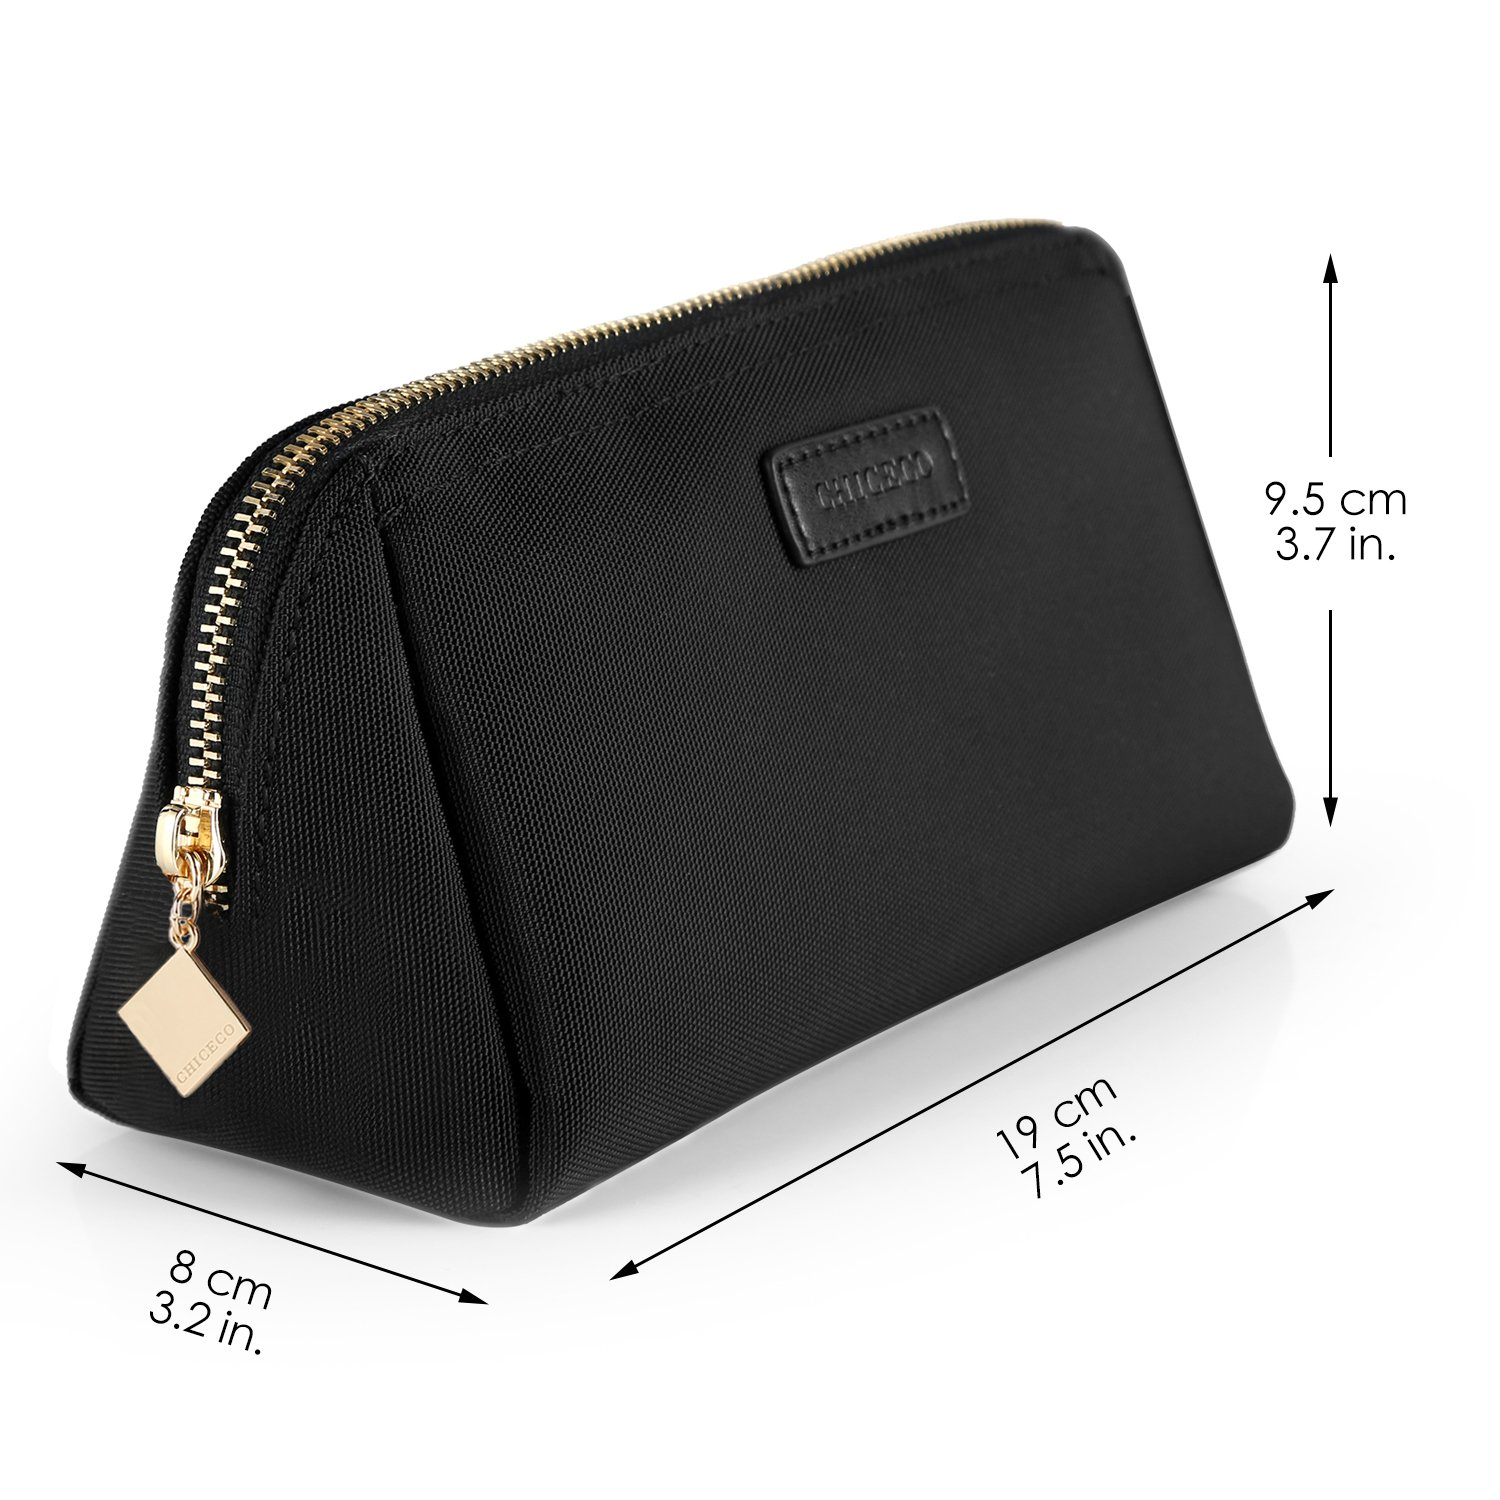 Portable Makeup Bag, Waterproof Handy Travel Cosmetic Pouch Clutch - Black